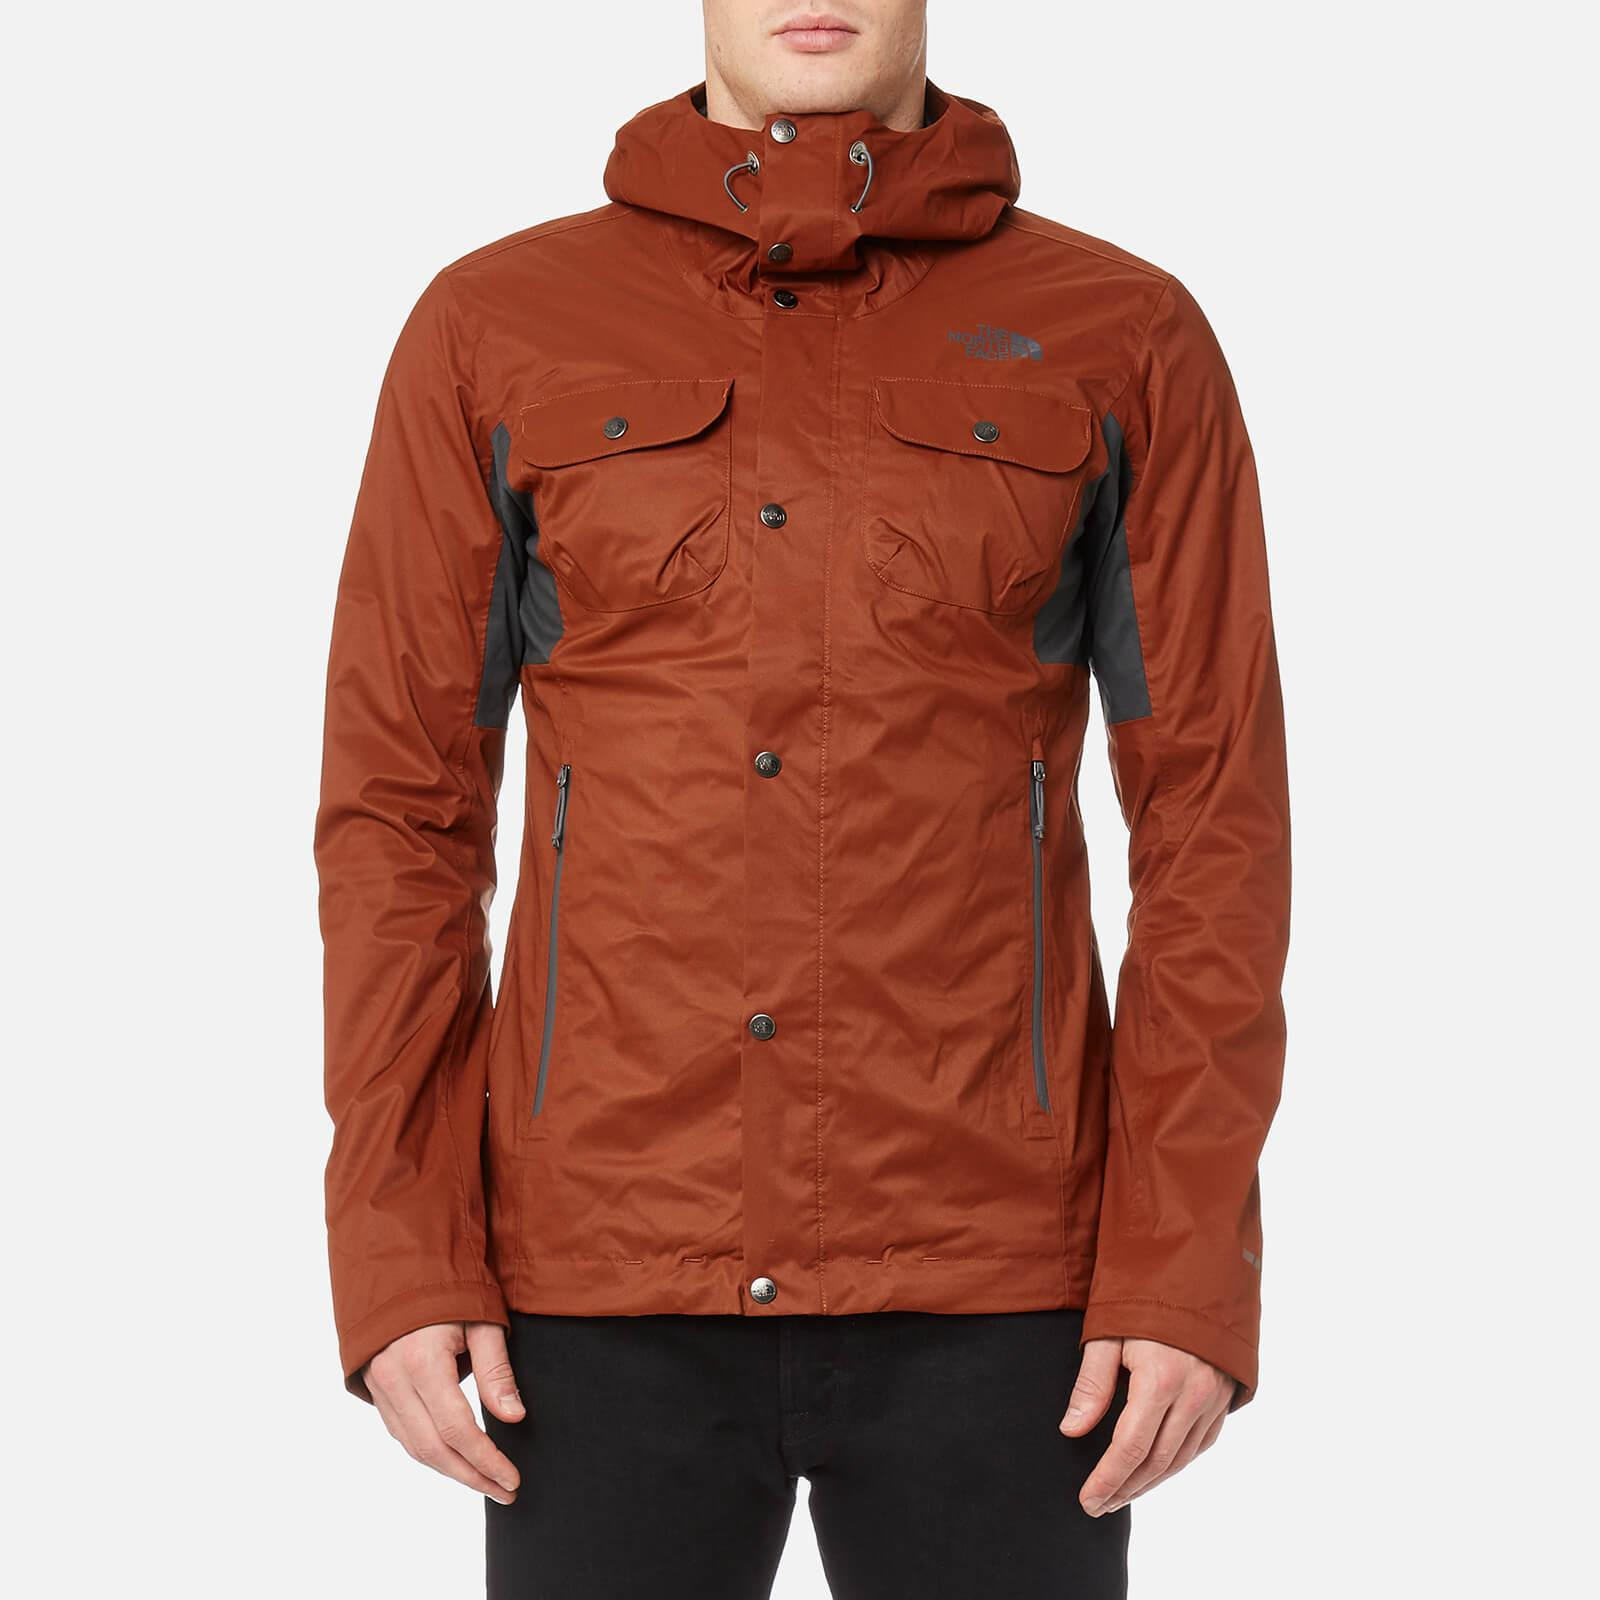 80fa4a869c5f The North Face Arrano Jacket in Brown for Men - Lyst